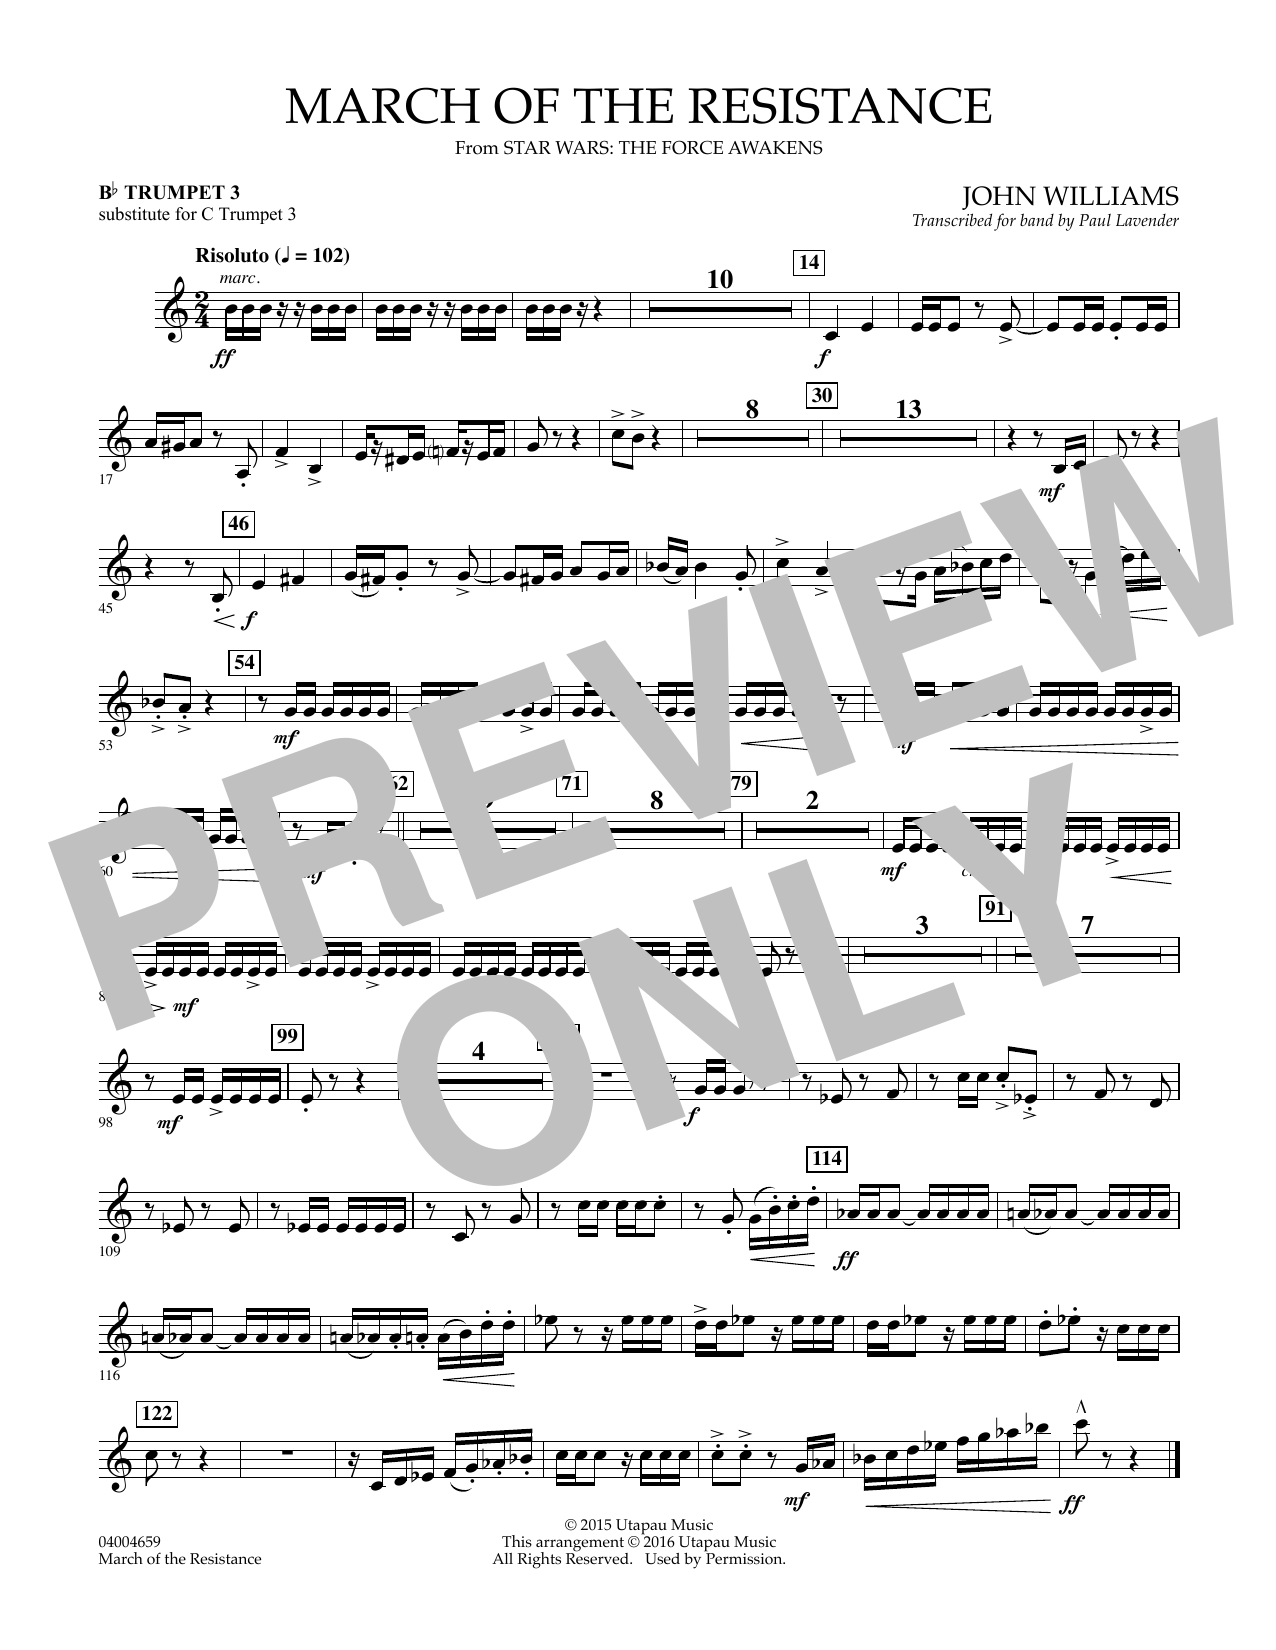 March of the Resistance - Bb Trumpet 1 (sub. C Tpt. 1 - - Bb Trumpet 3 (sub. C Tpt. 3) Sheet Music